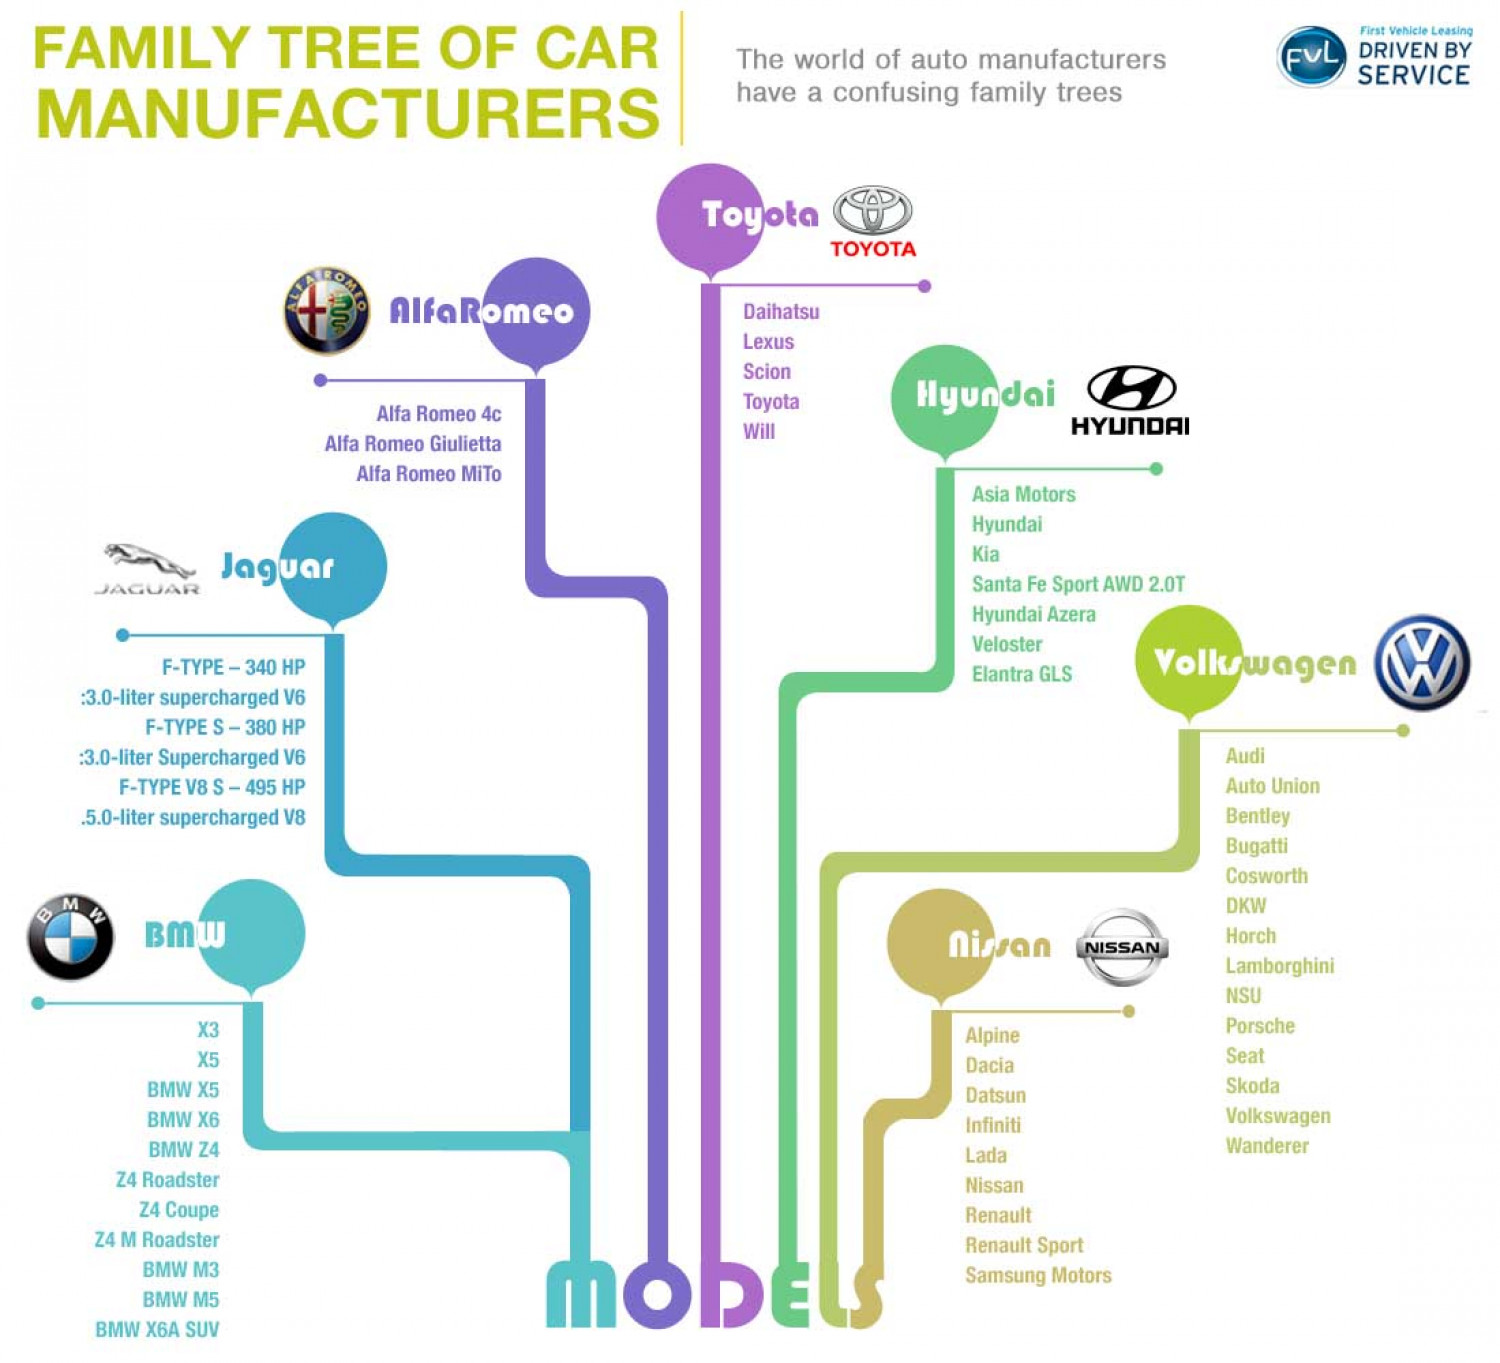 Family Tree of Car Manufacturers Infographic